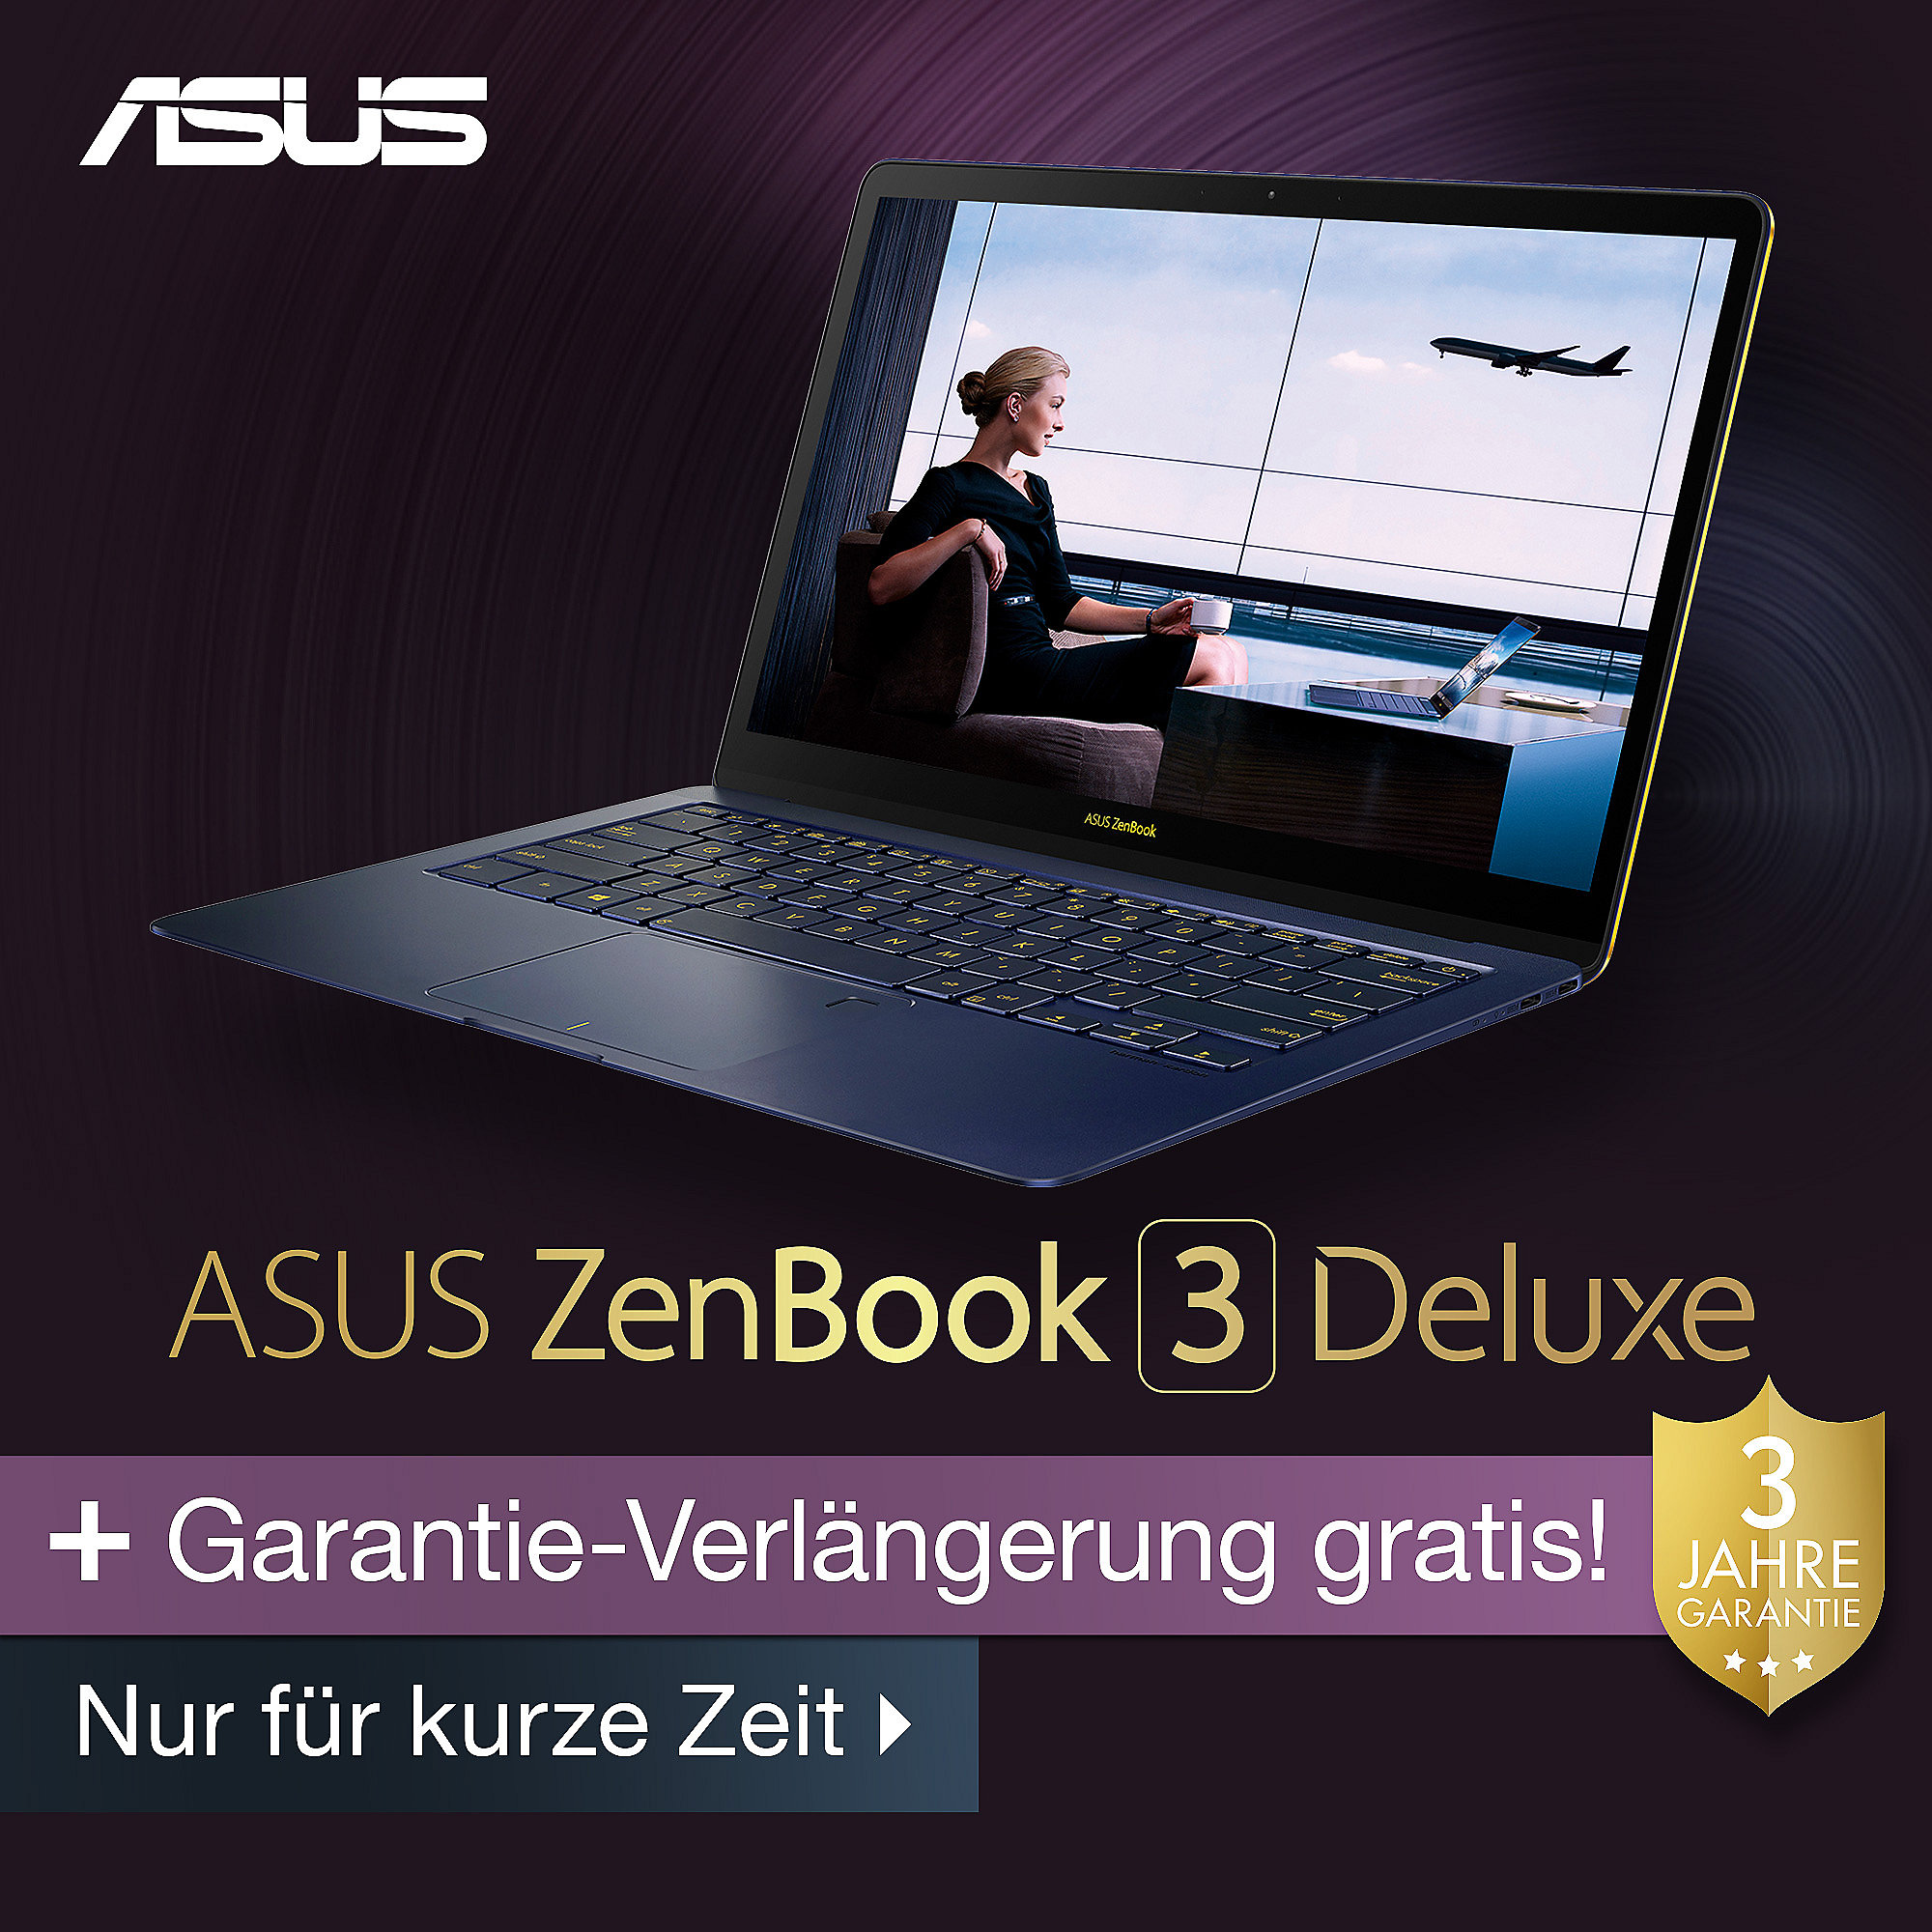 "Asus ZenBook 3 Deluxe i5-7200U 8GB/256GB SSD 14"" FHD W10"